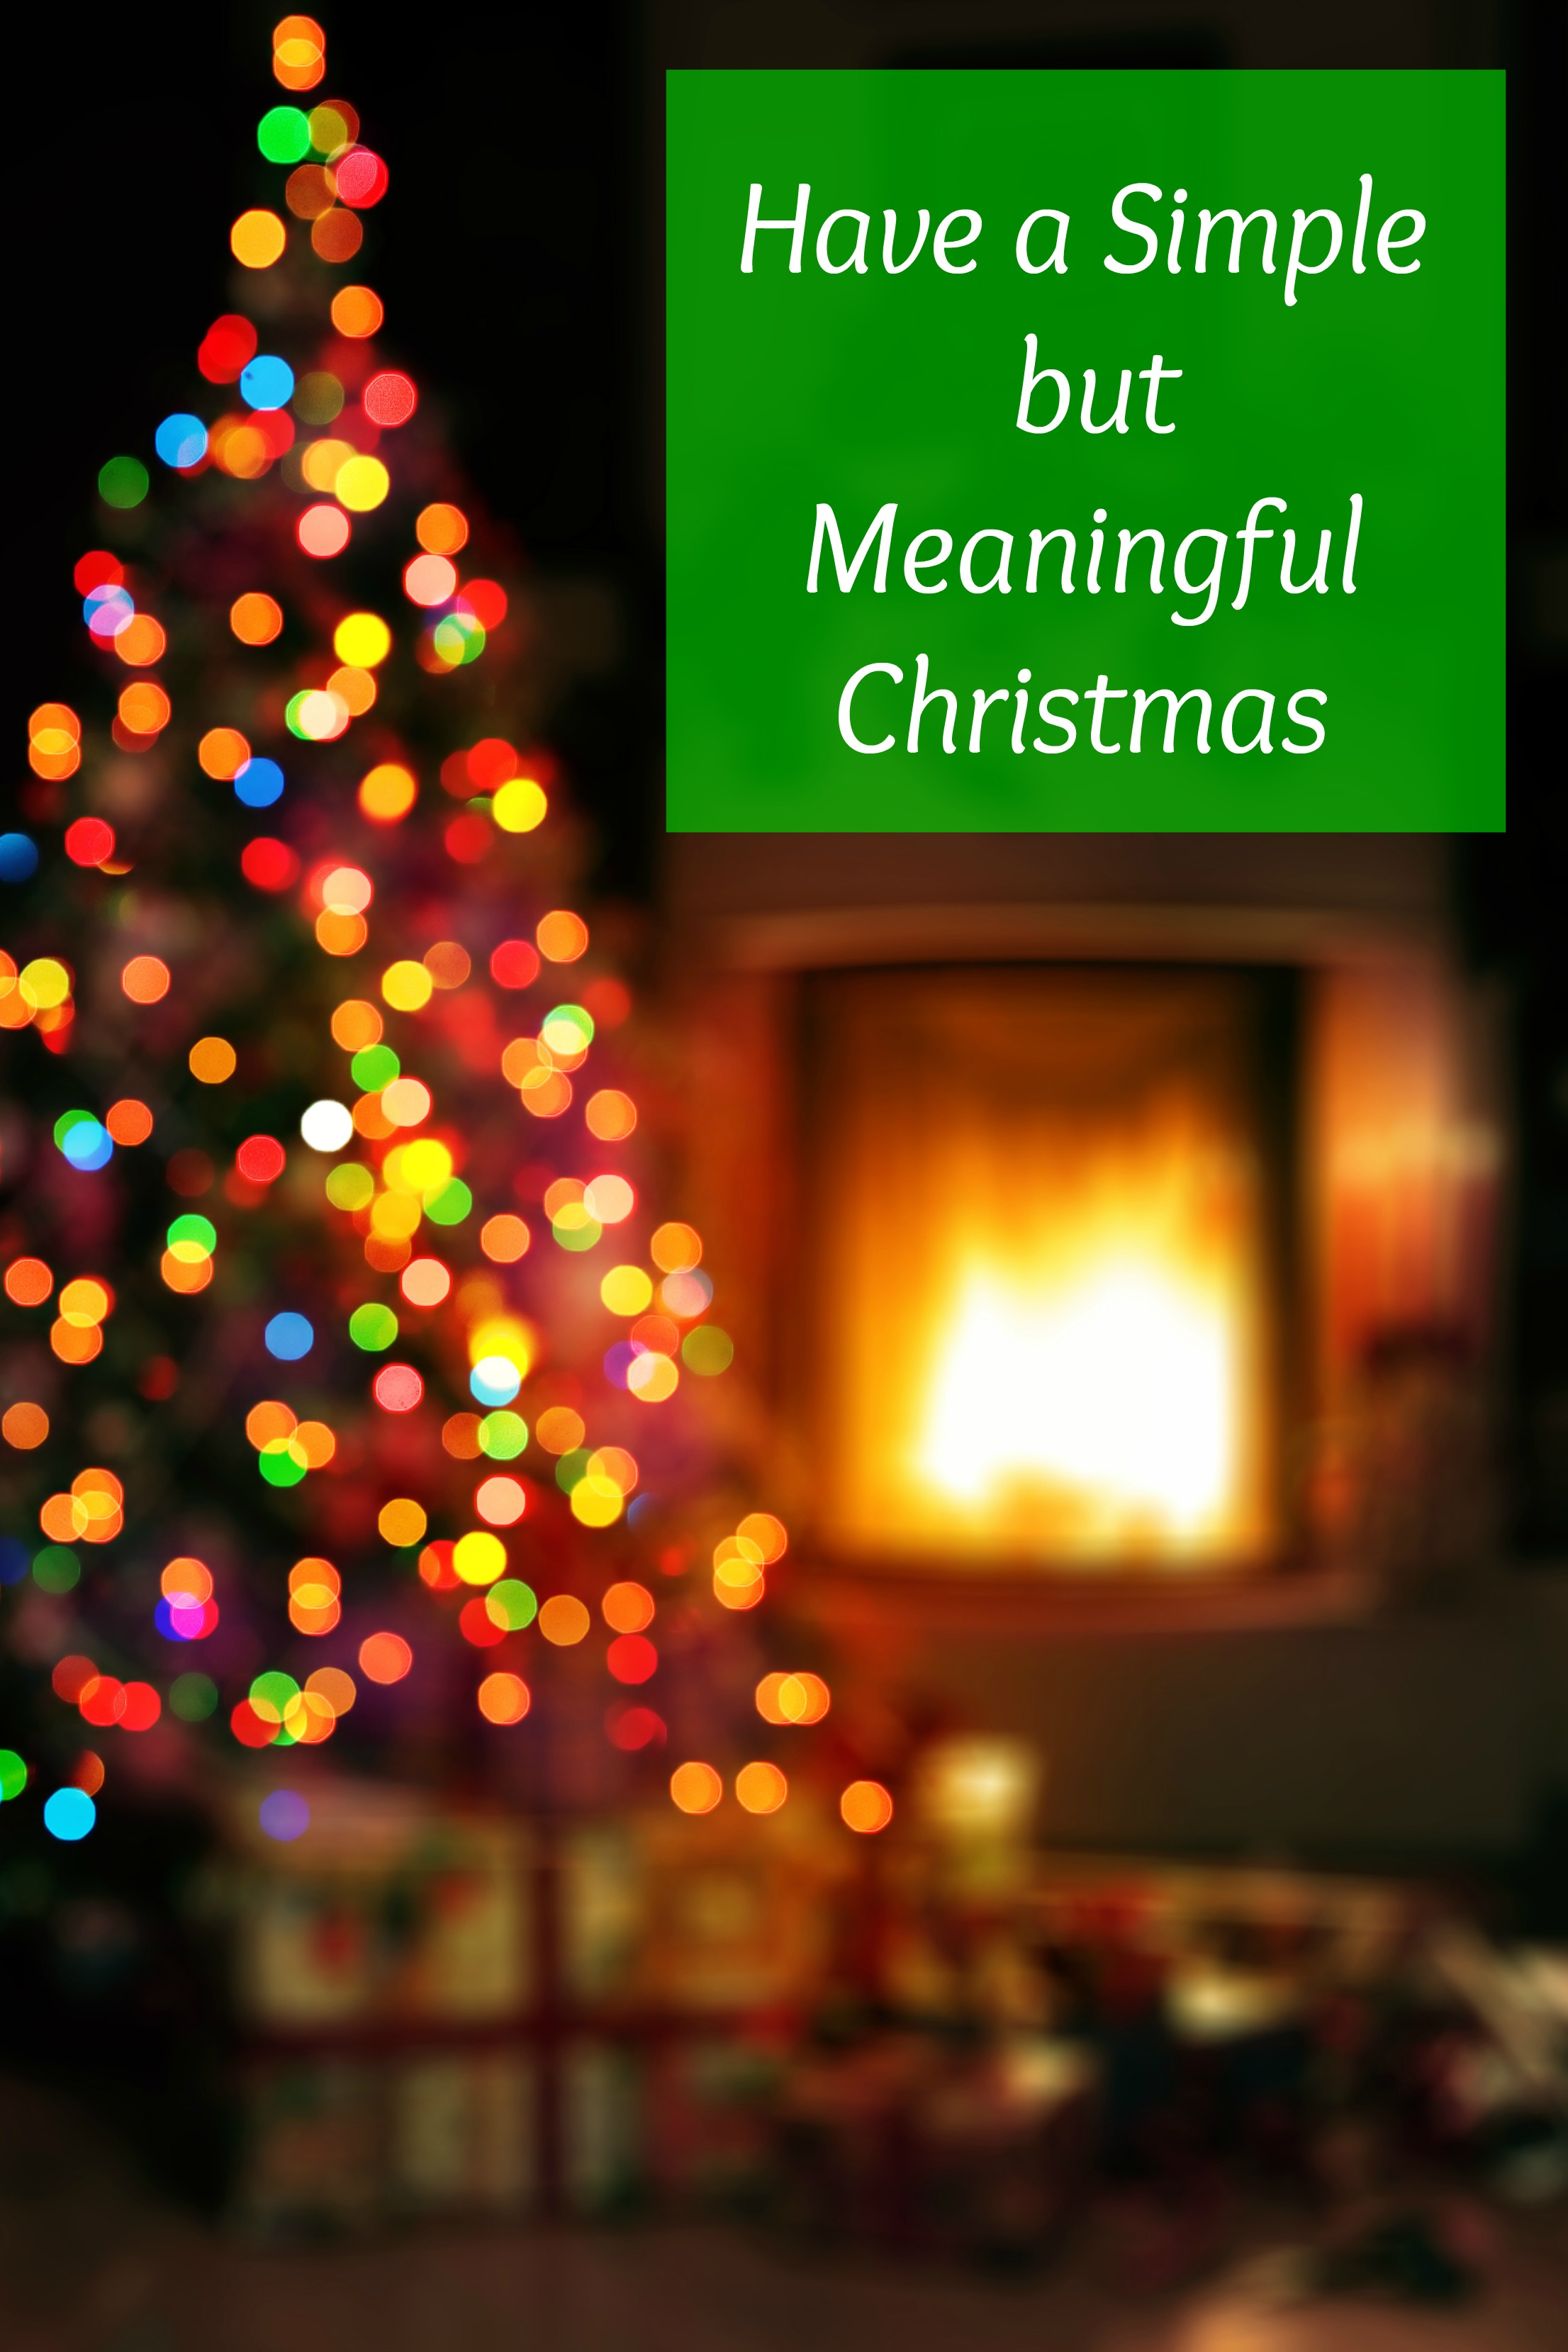 have a simple but meaningful christmas